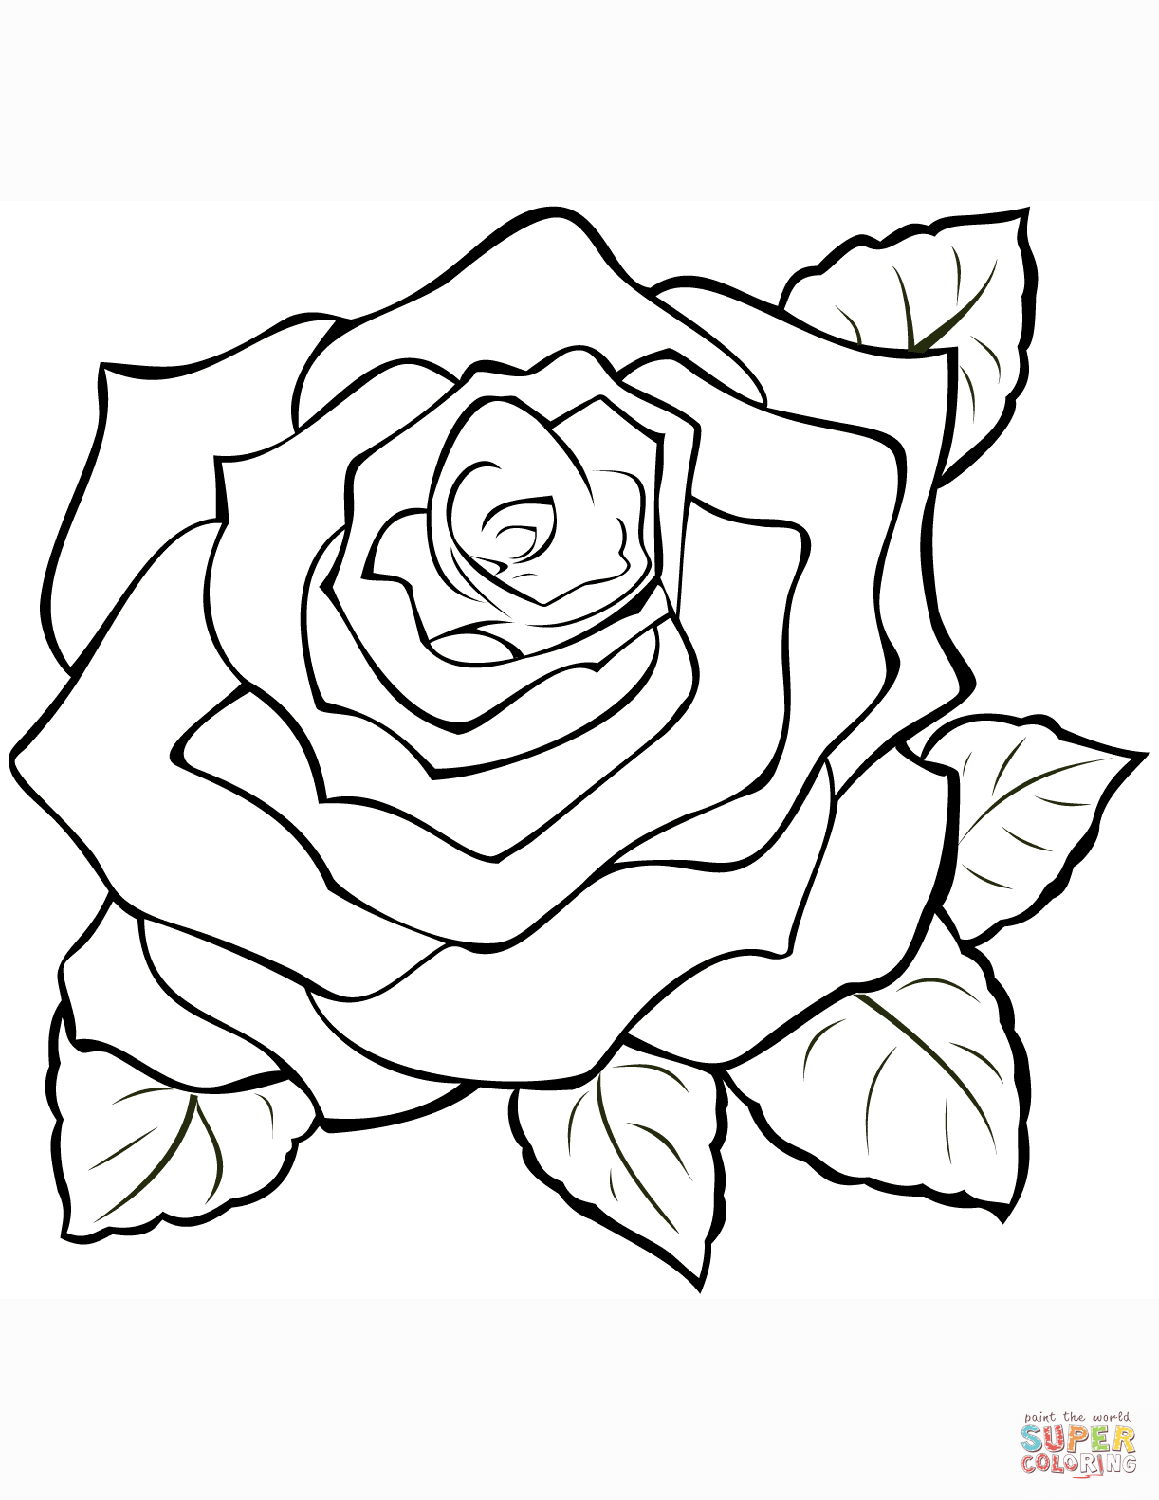 coloring pages rose rose coloring page free printable coloring pages coloring pages rose 1 1